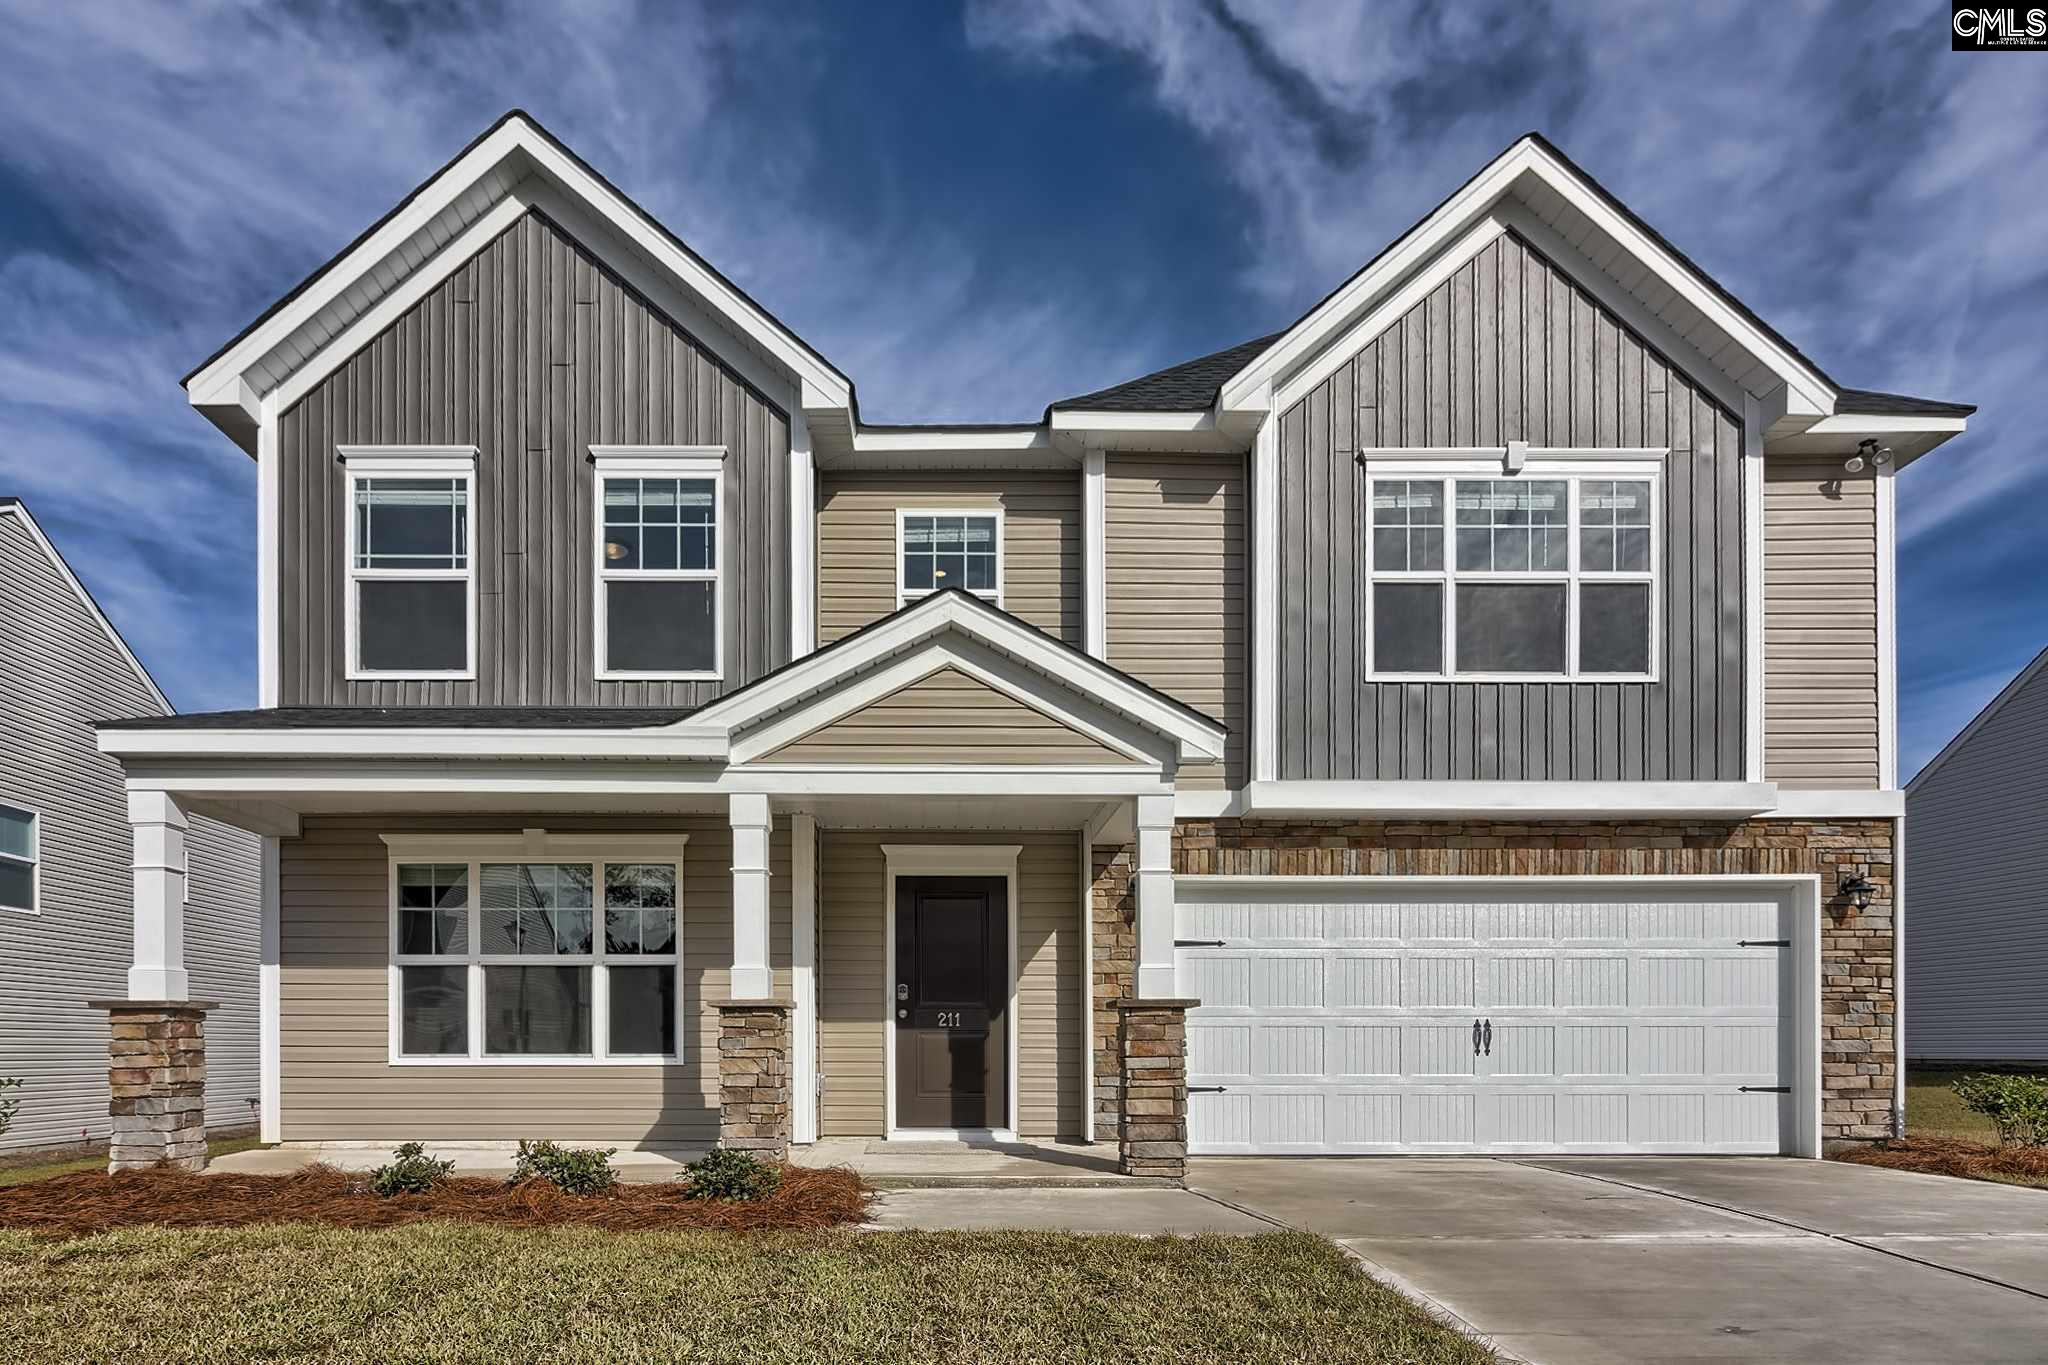 211 Turnfield West Columbia, SC 29170